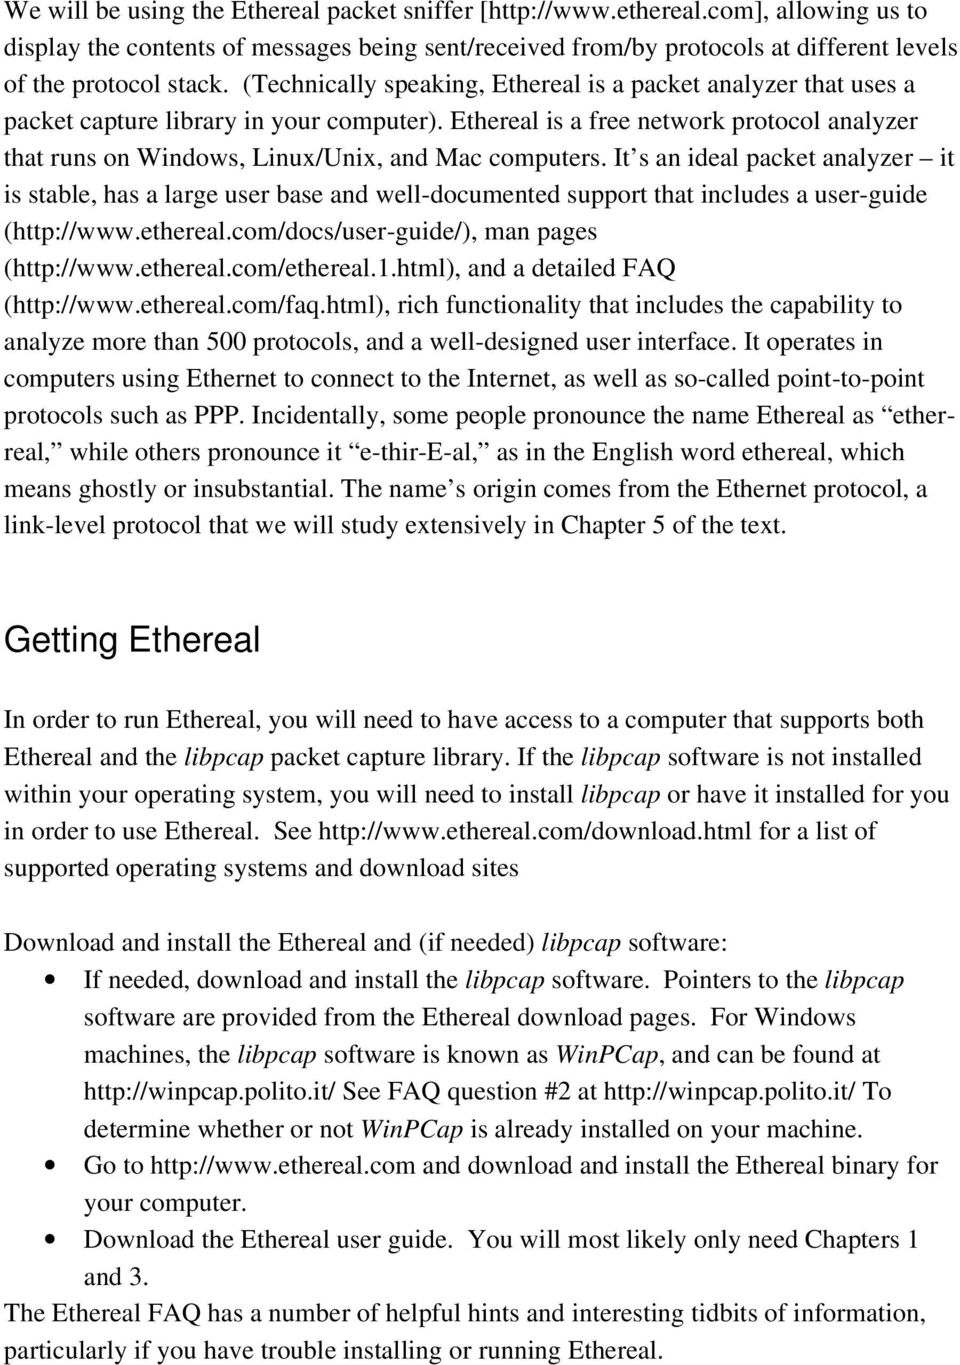 Ethereal is a free network protocol analyzer that runs on Windows, Linux/Unix, and Mac computers.